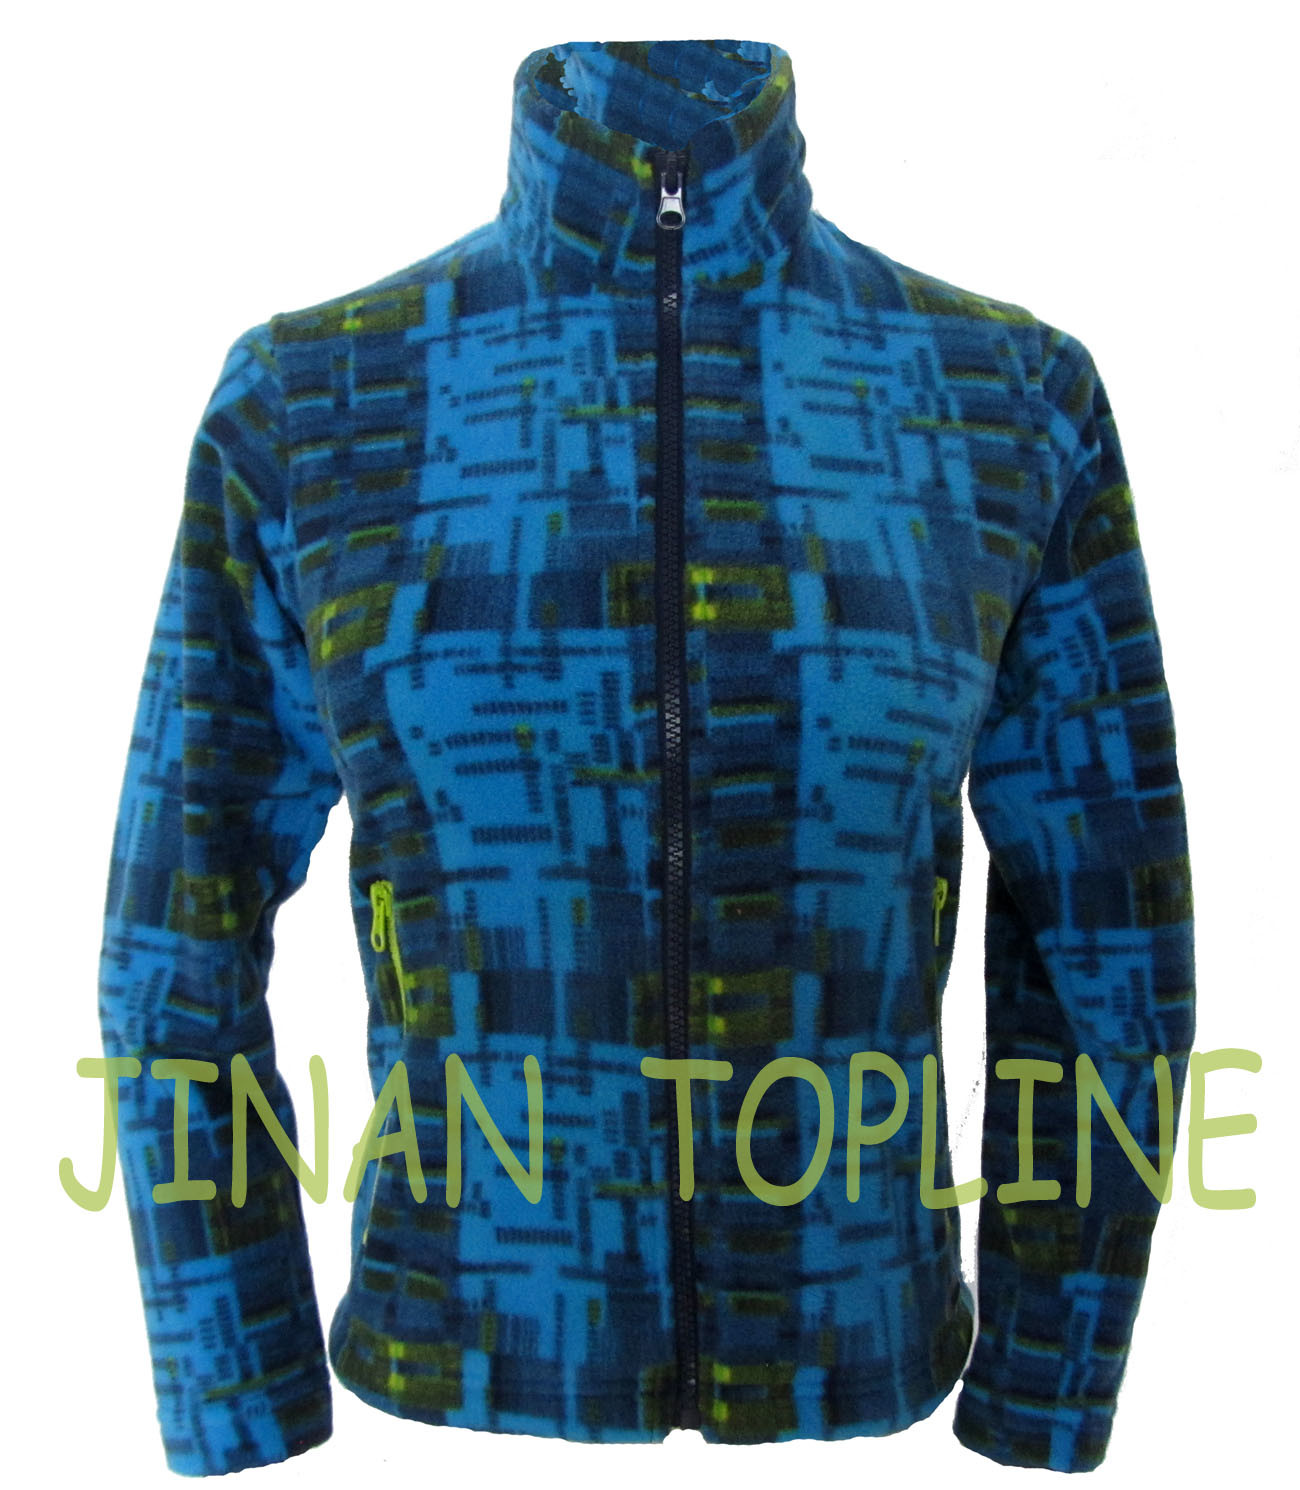 Long Sleeve Printed Microfleece Jacket